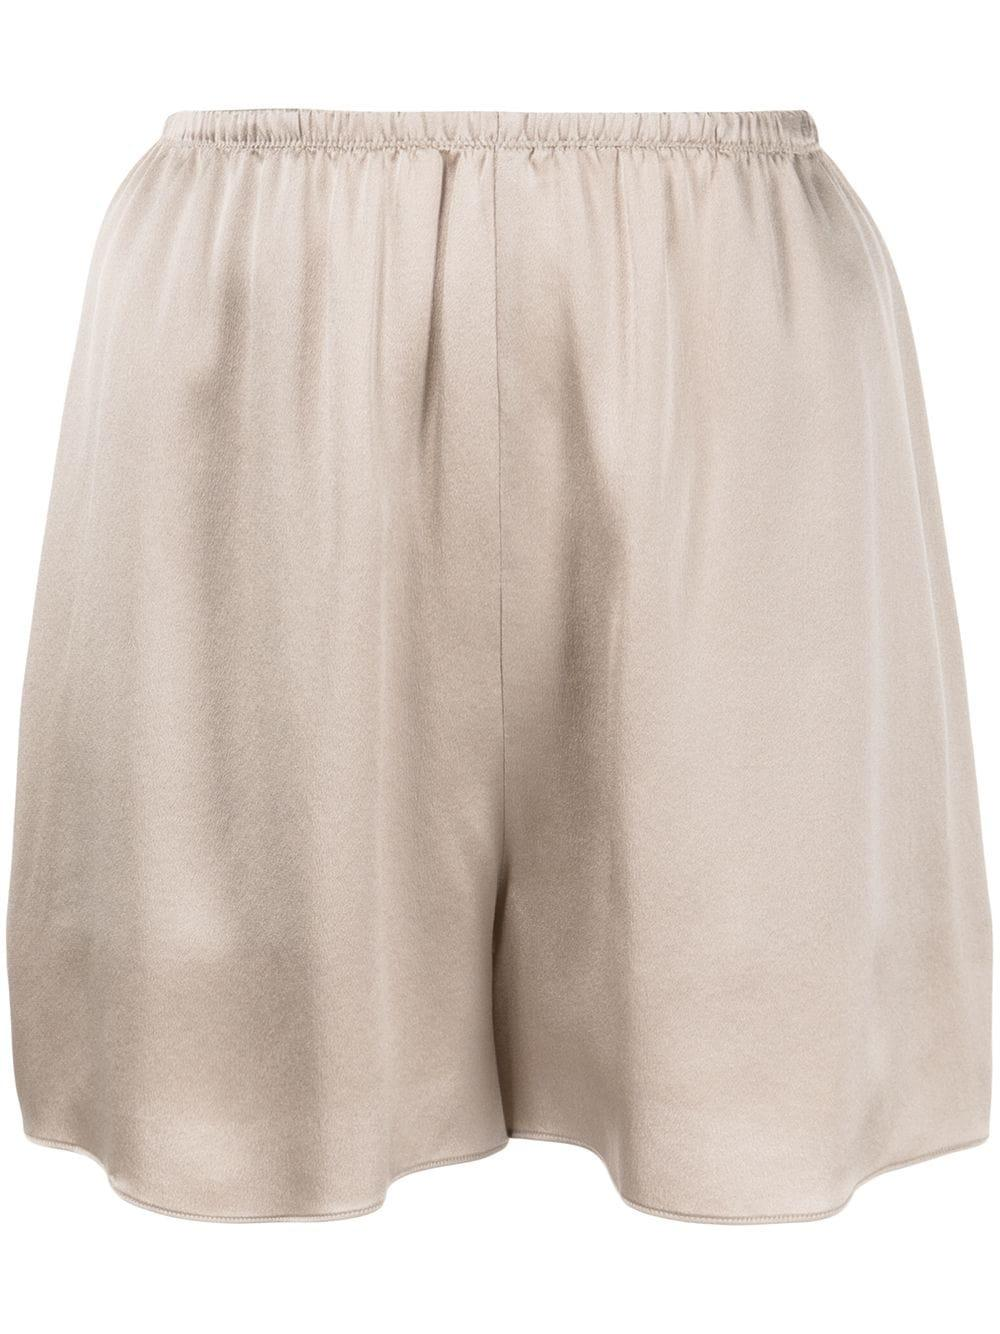 Satin Pull on Shorts